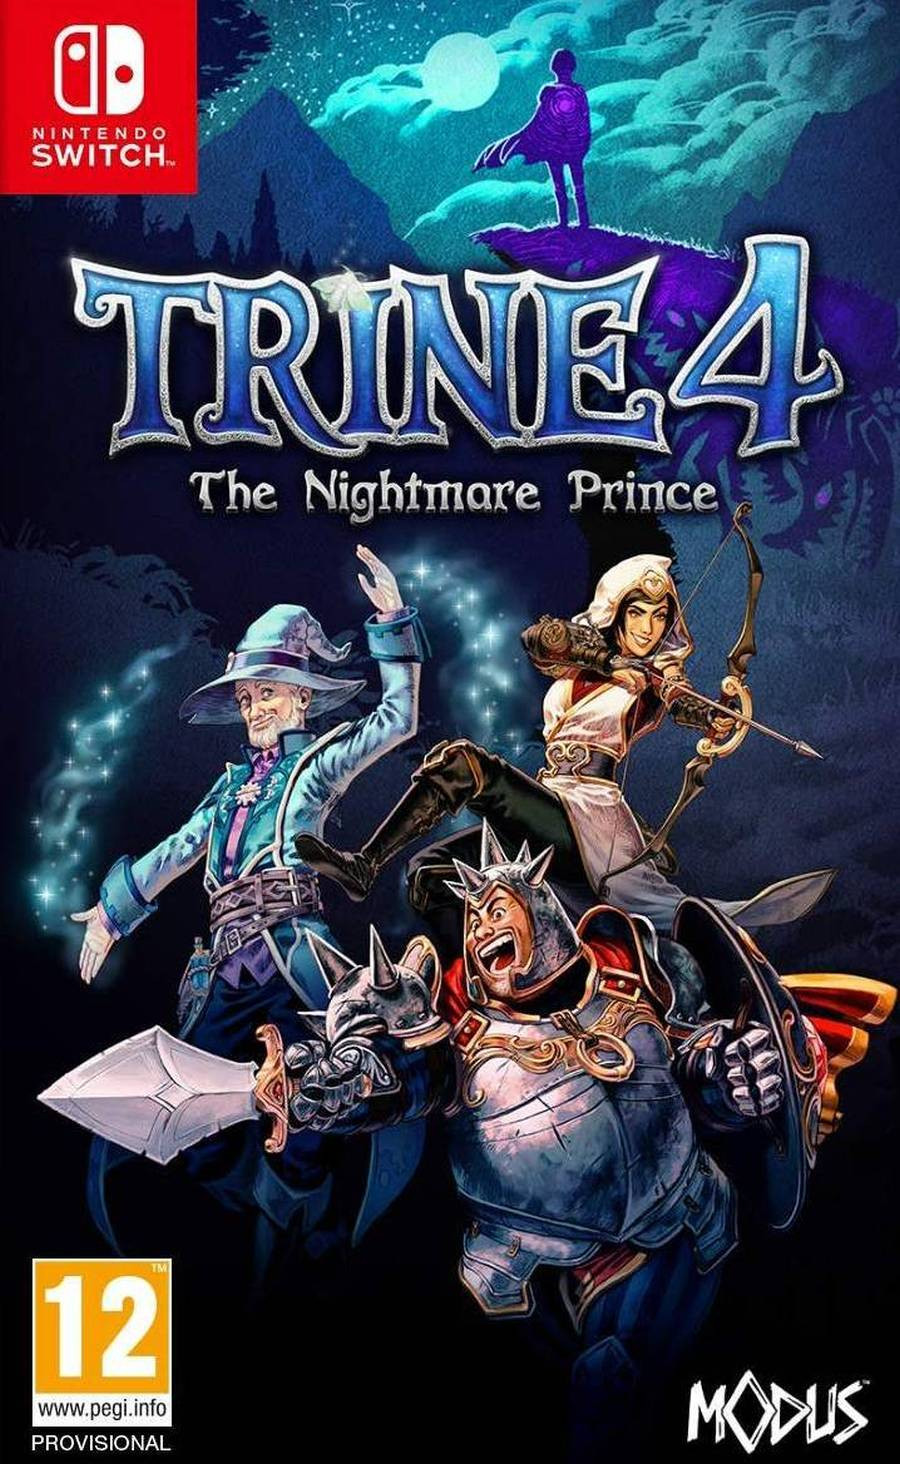 SWITCH Trine 4 - The Nightmare Prince